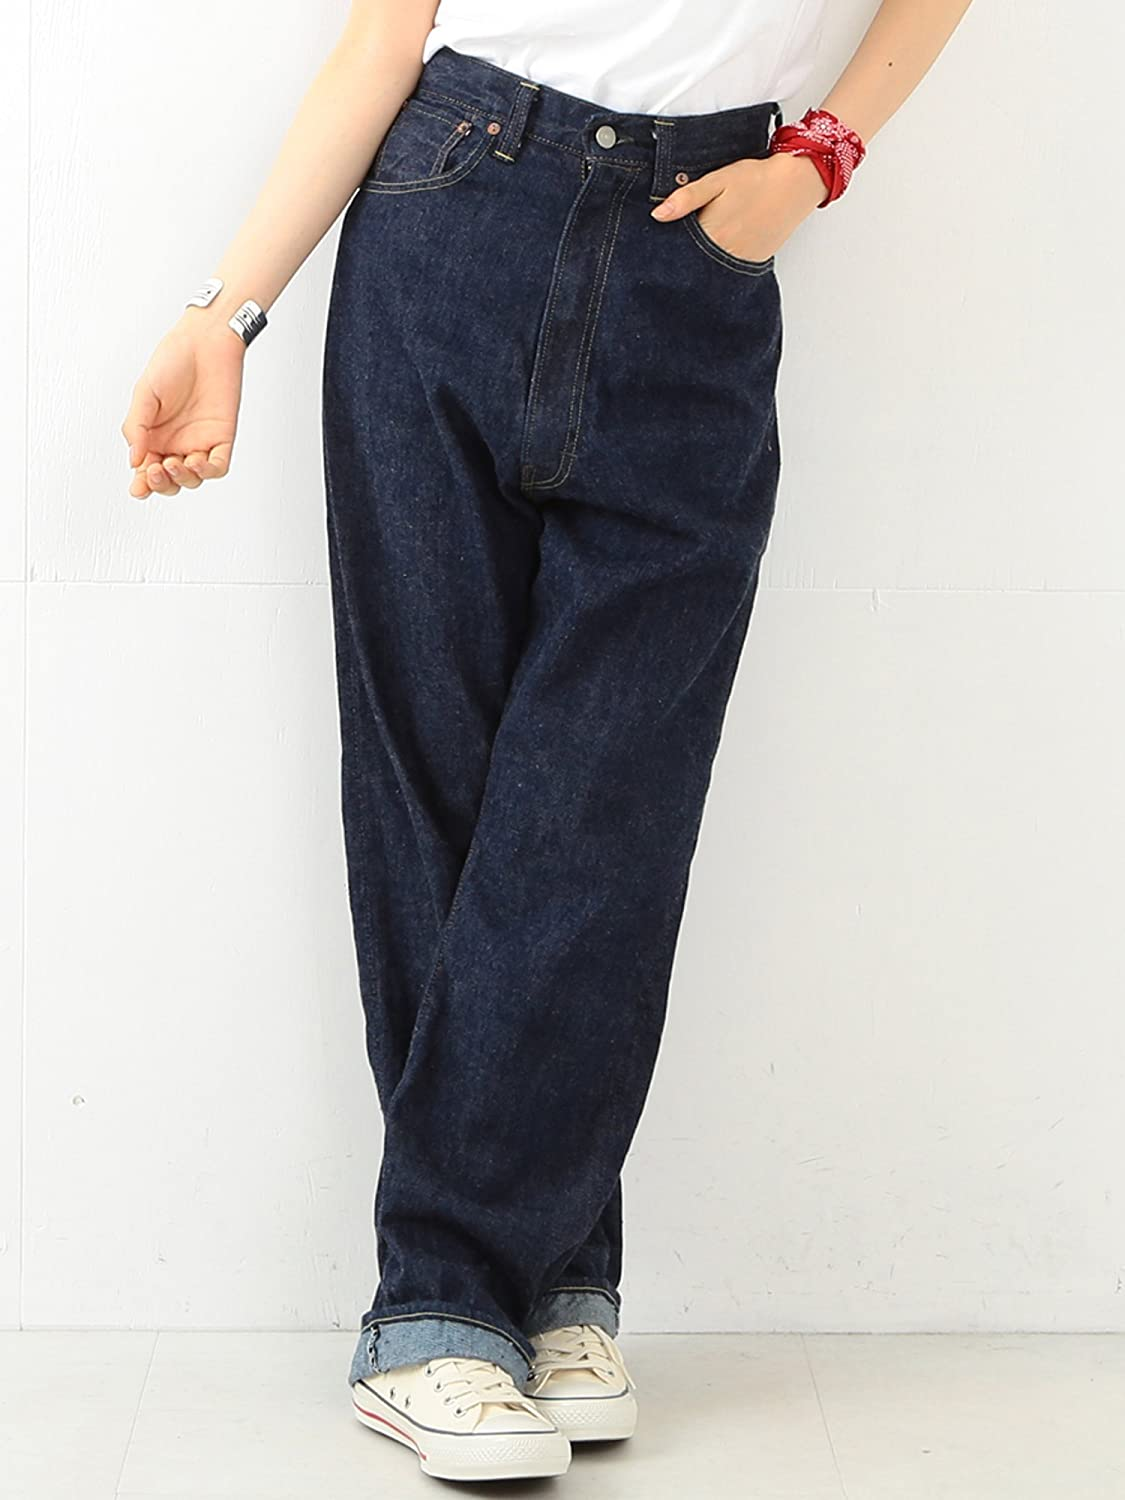 Amazon | (ビームスボーイ)BEAMS BOY orslow / Monroe Pants Special | ジーンズ 通販